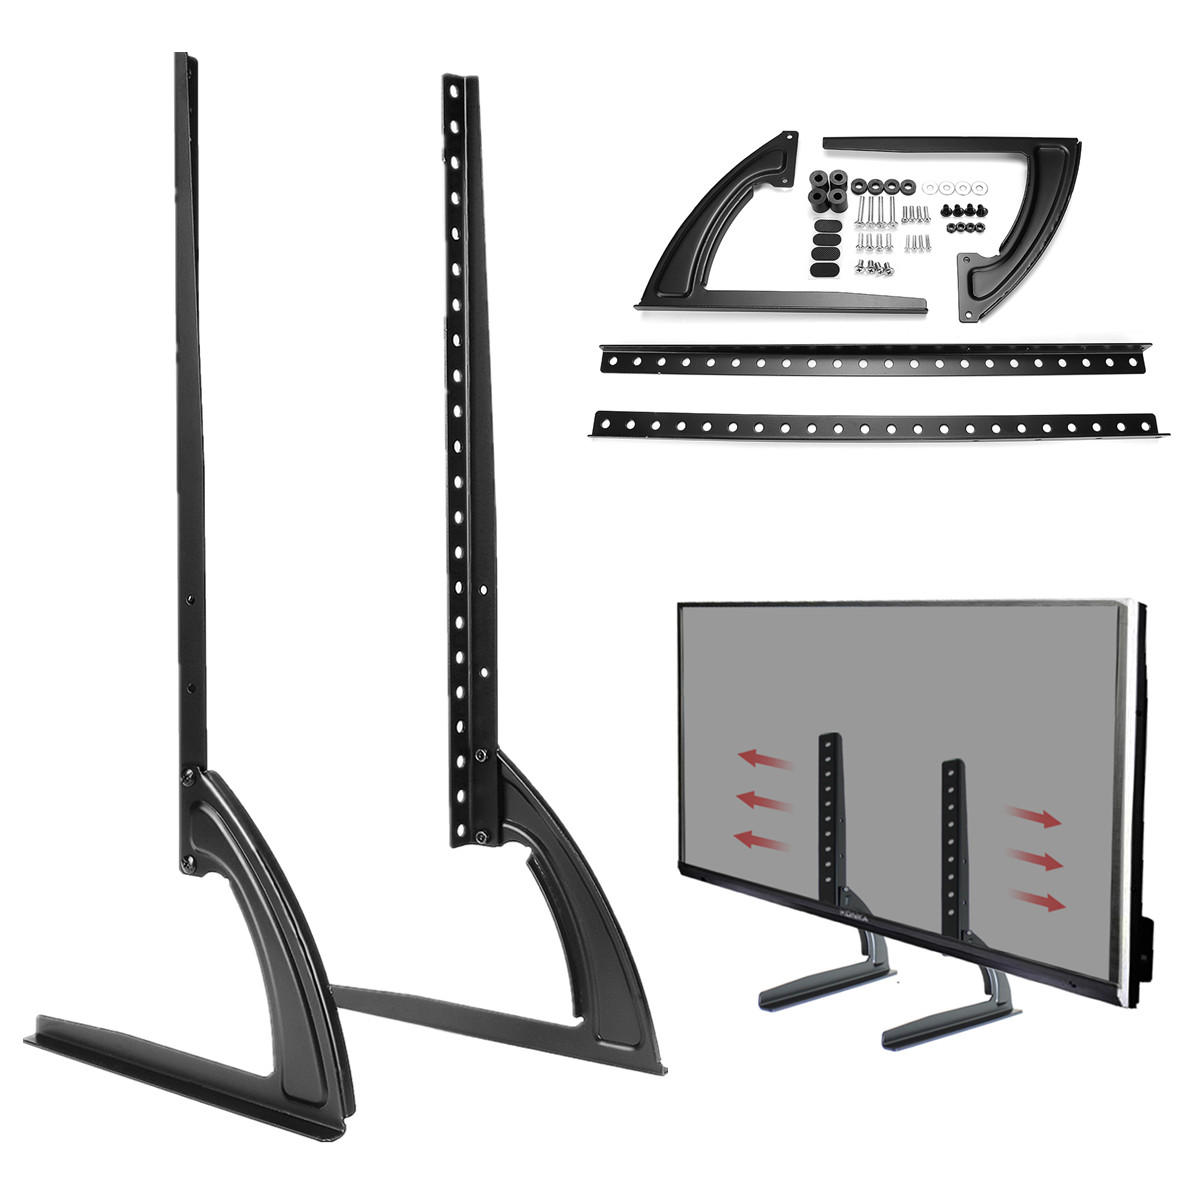 C Discount Tv Charmant Universal Table top Tv Stand Legs for Led Lcd Plasma Flat Screen Tv 26 65inch Of 23 Inspirant C Discount Tv